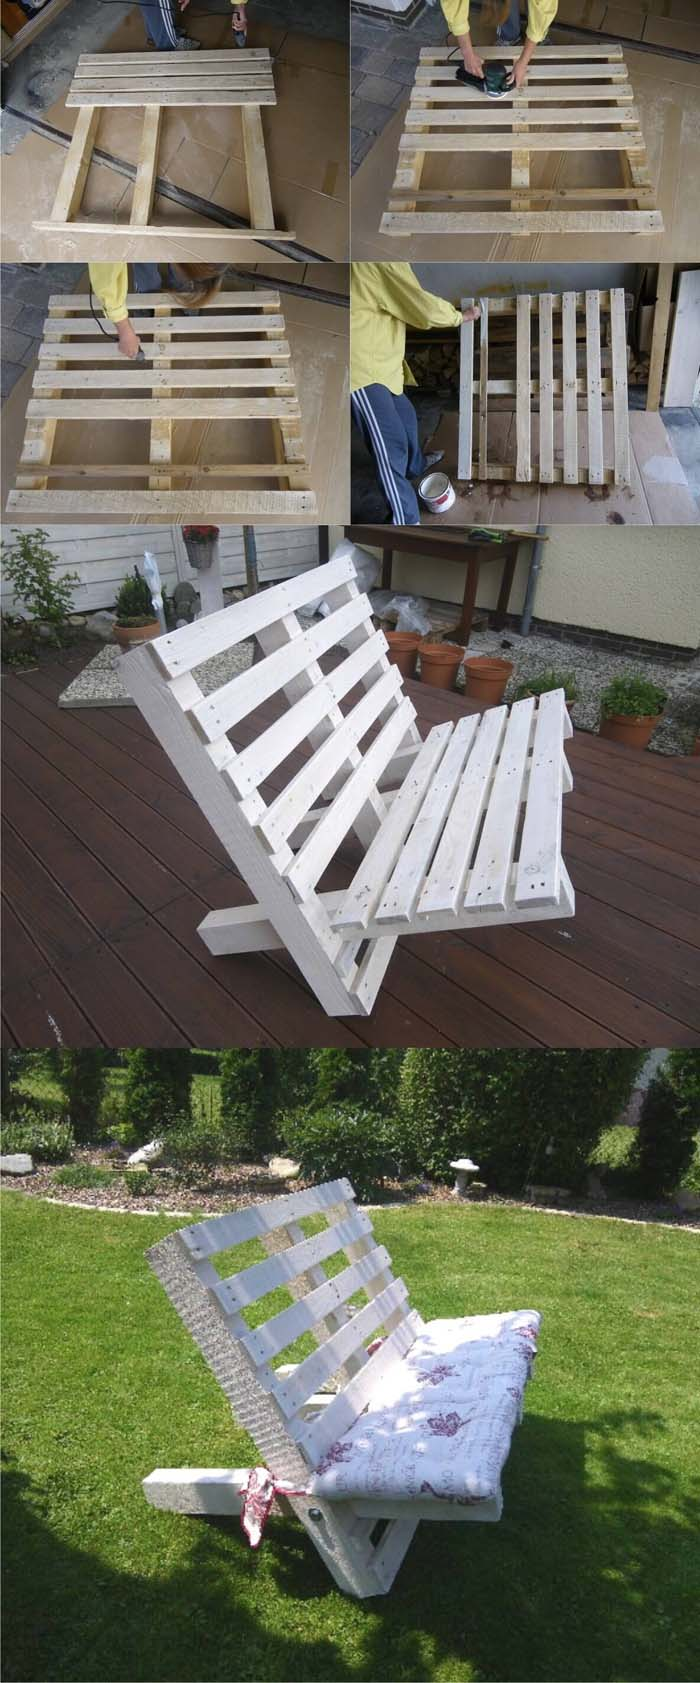 A White Bench Created From Two Pallets #pallet #garden #furniture #decorhomeideas